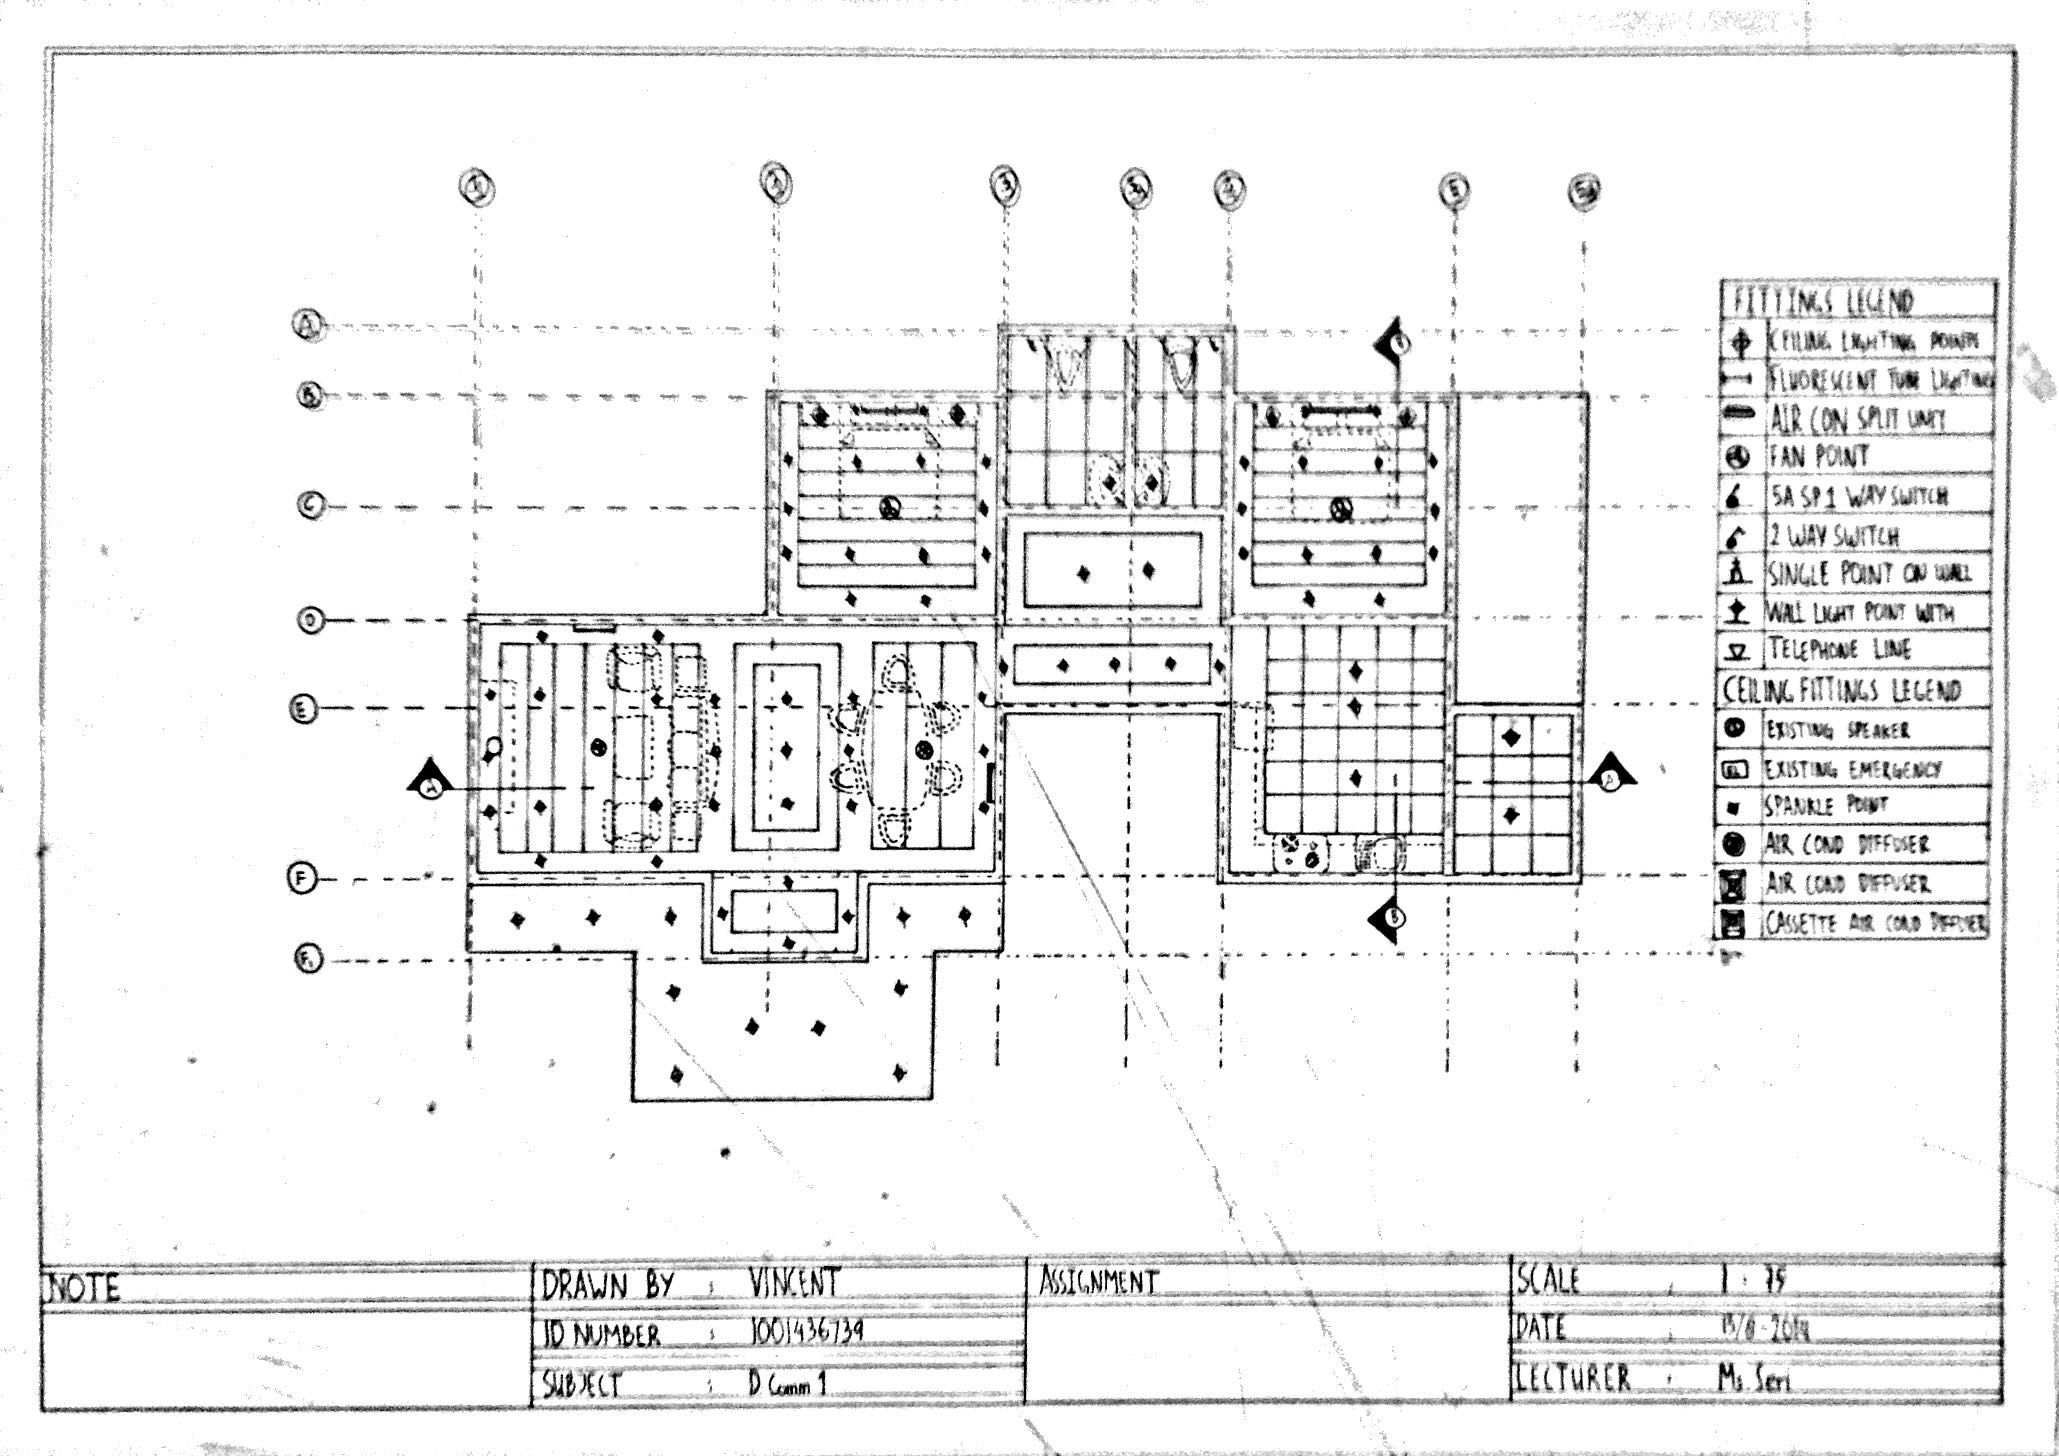 Assignment 4 Multi View Drawing Plan Vincentlunia